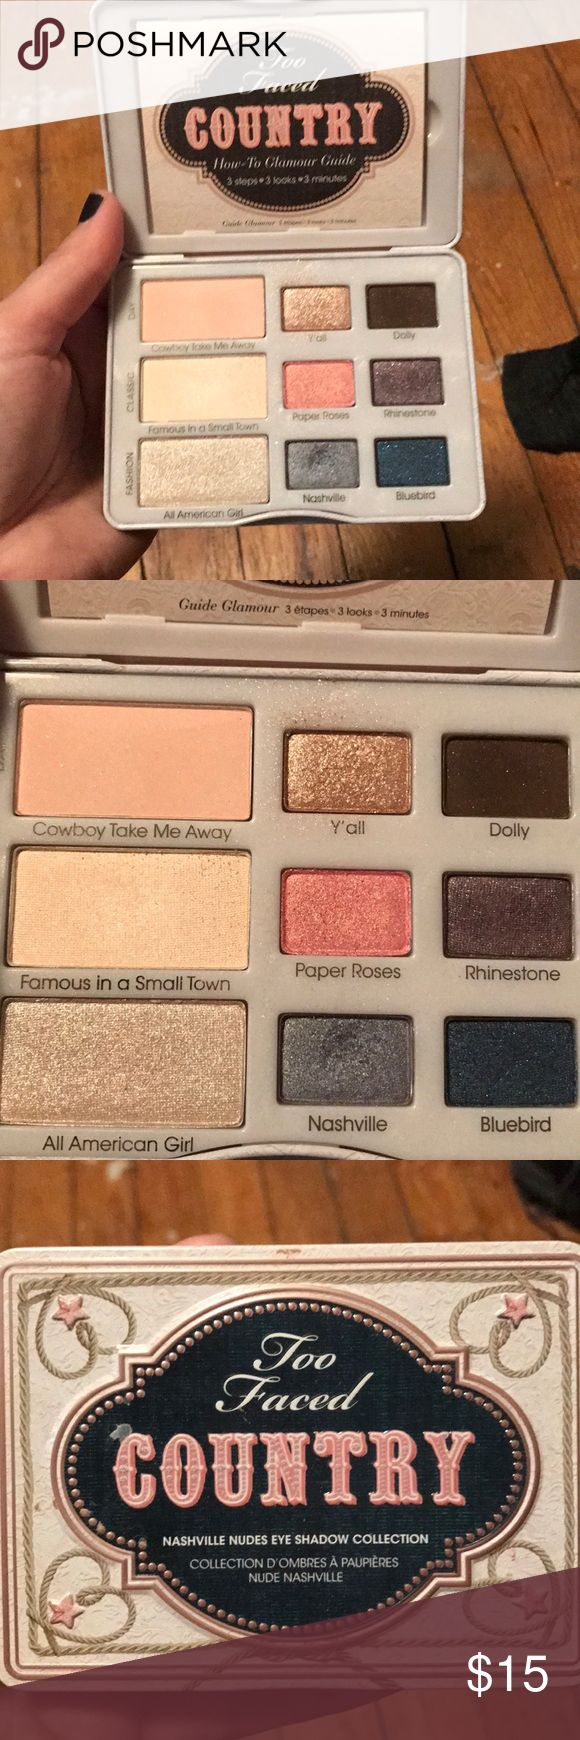 too faced country eye palette too faced country eye palette, tried once like brand new Too Faced Makeup Eyeshadow